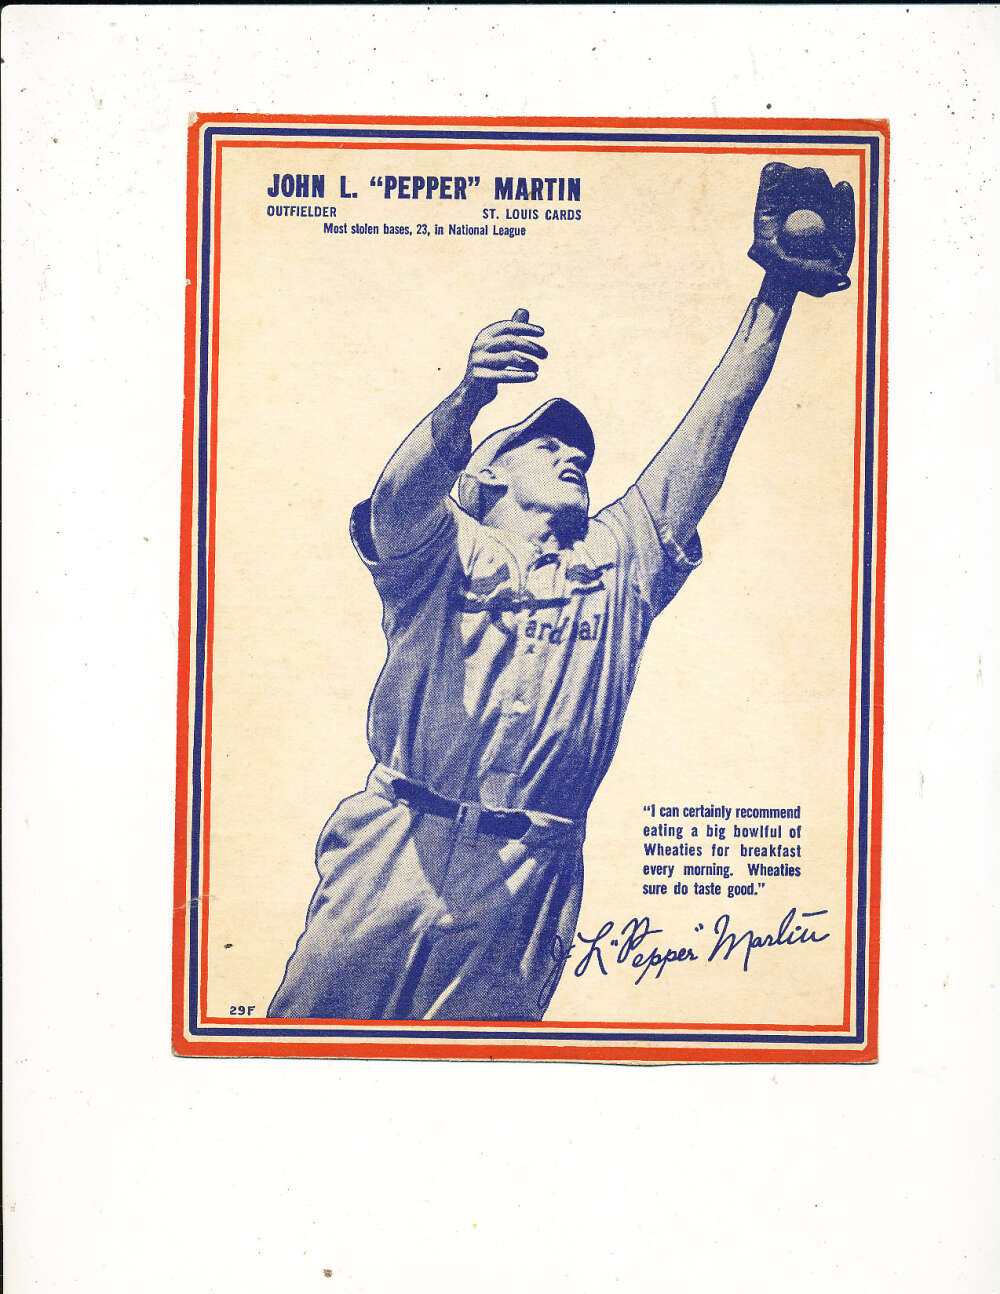 1937 Wheaties card John Pepper Martin Cardinals